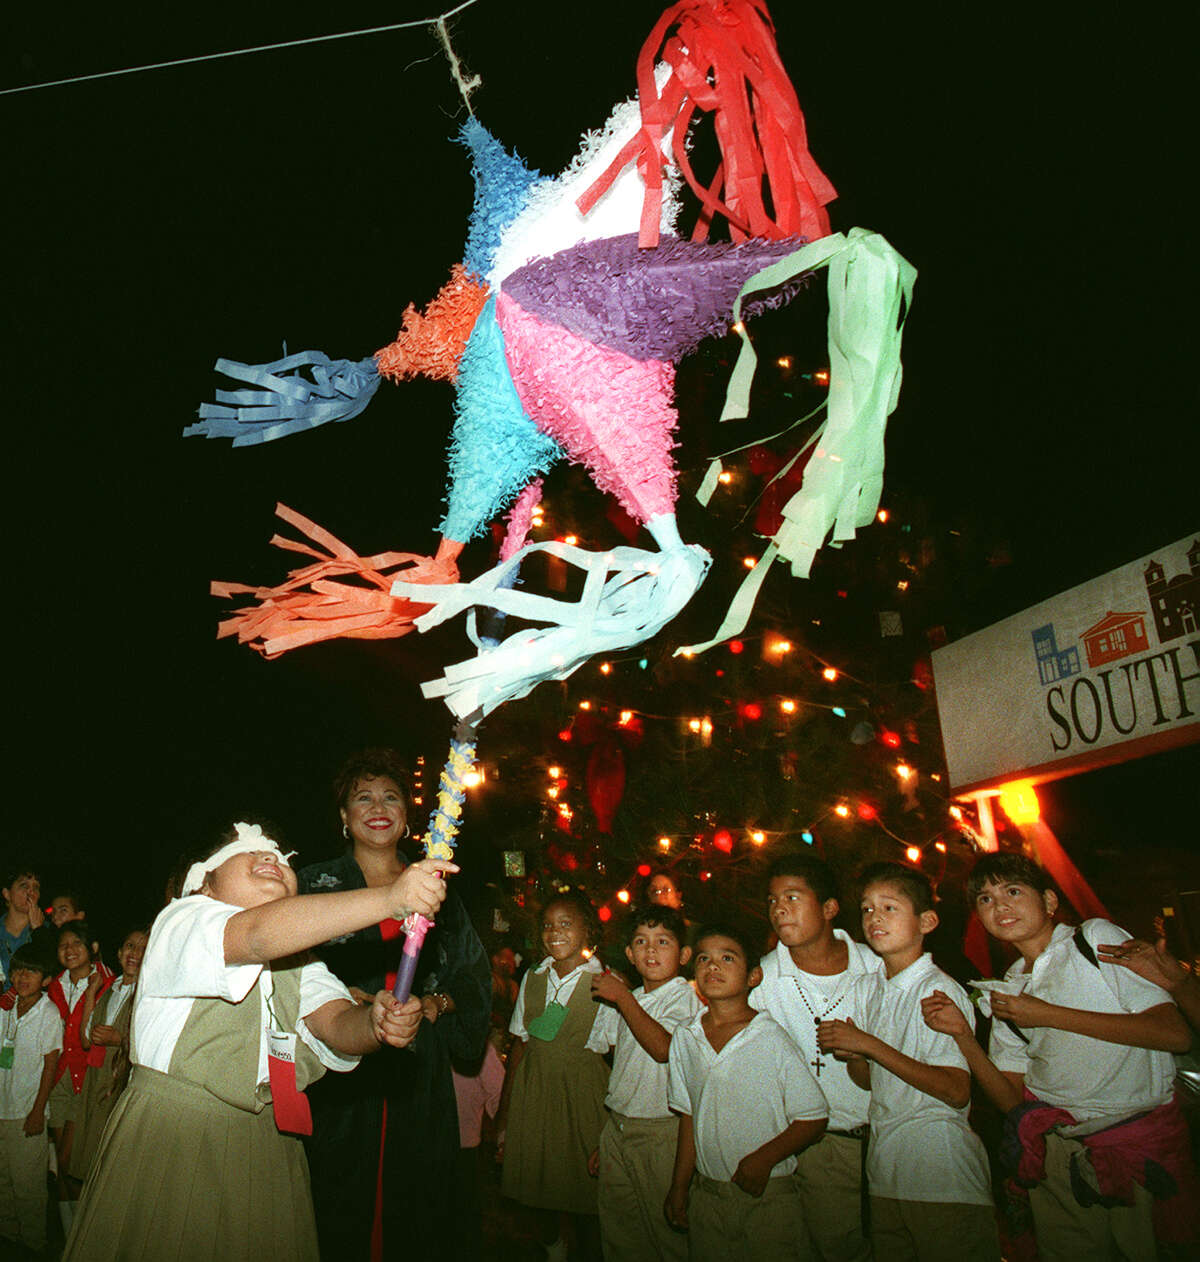 Piñatafest Two day event in the East End. 6 p.m. Friday: Warehouse pop-up party featuring Ballet Folklorico Azteca, Heaven-Lee Acosta-Mariachi and Boricua Soul DJ at 3118 Harrisburg. 10 a.m. Sunday: Piñatas on the Esplanade Sculpture Competition, featuring Mariachi Rebelde, piñata making, breaking and more. Free.